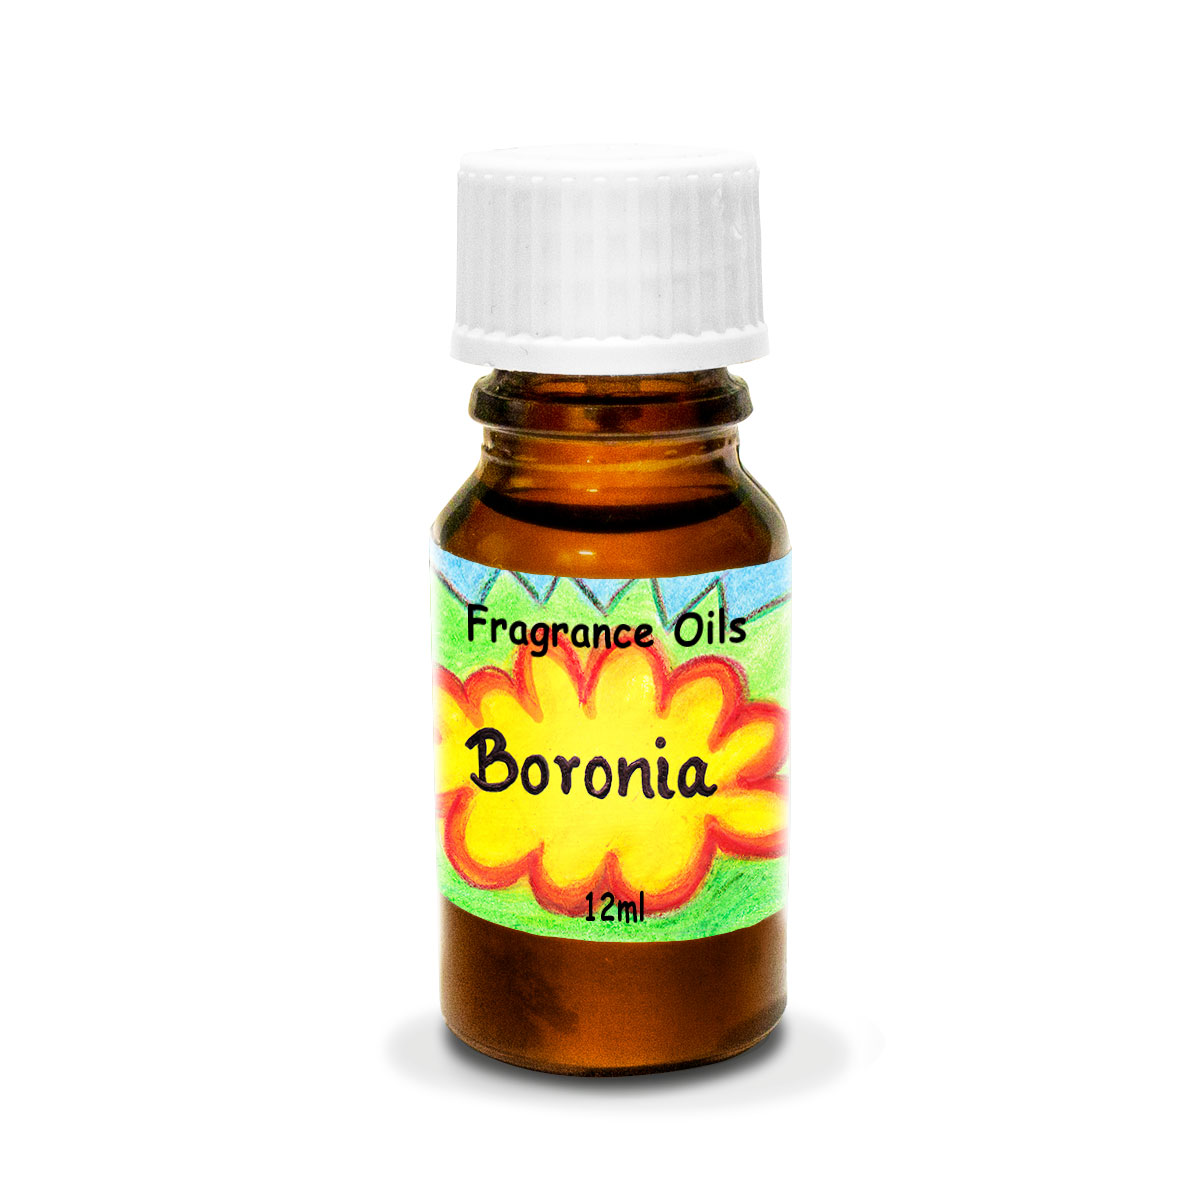 Boronia - Fragrance Oil